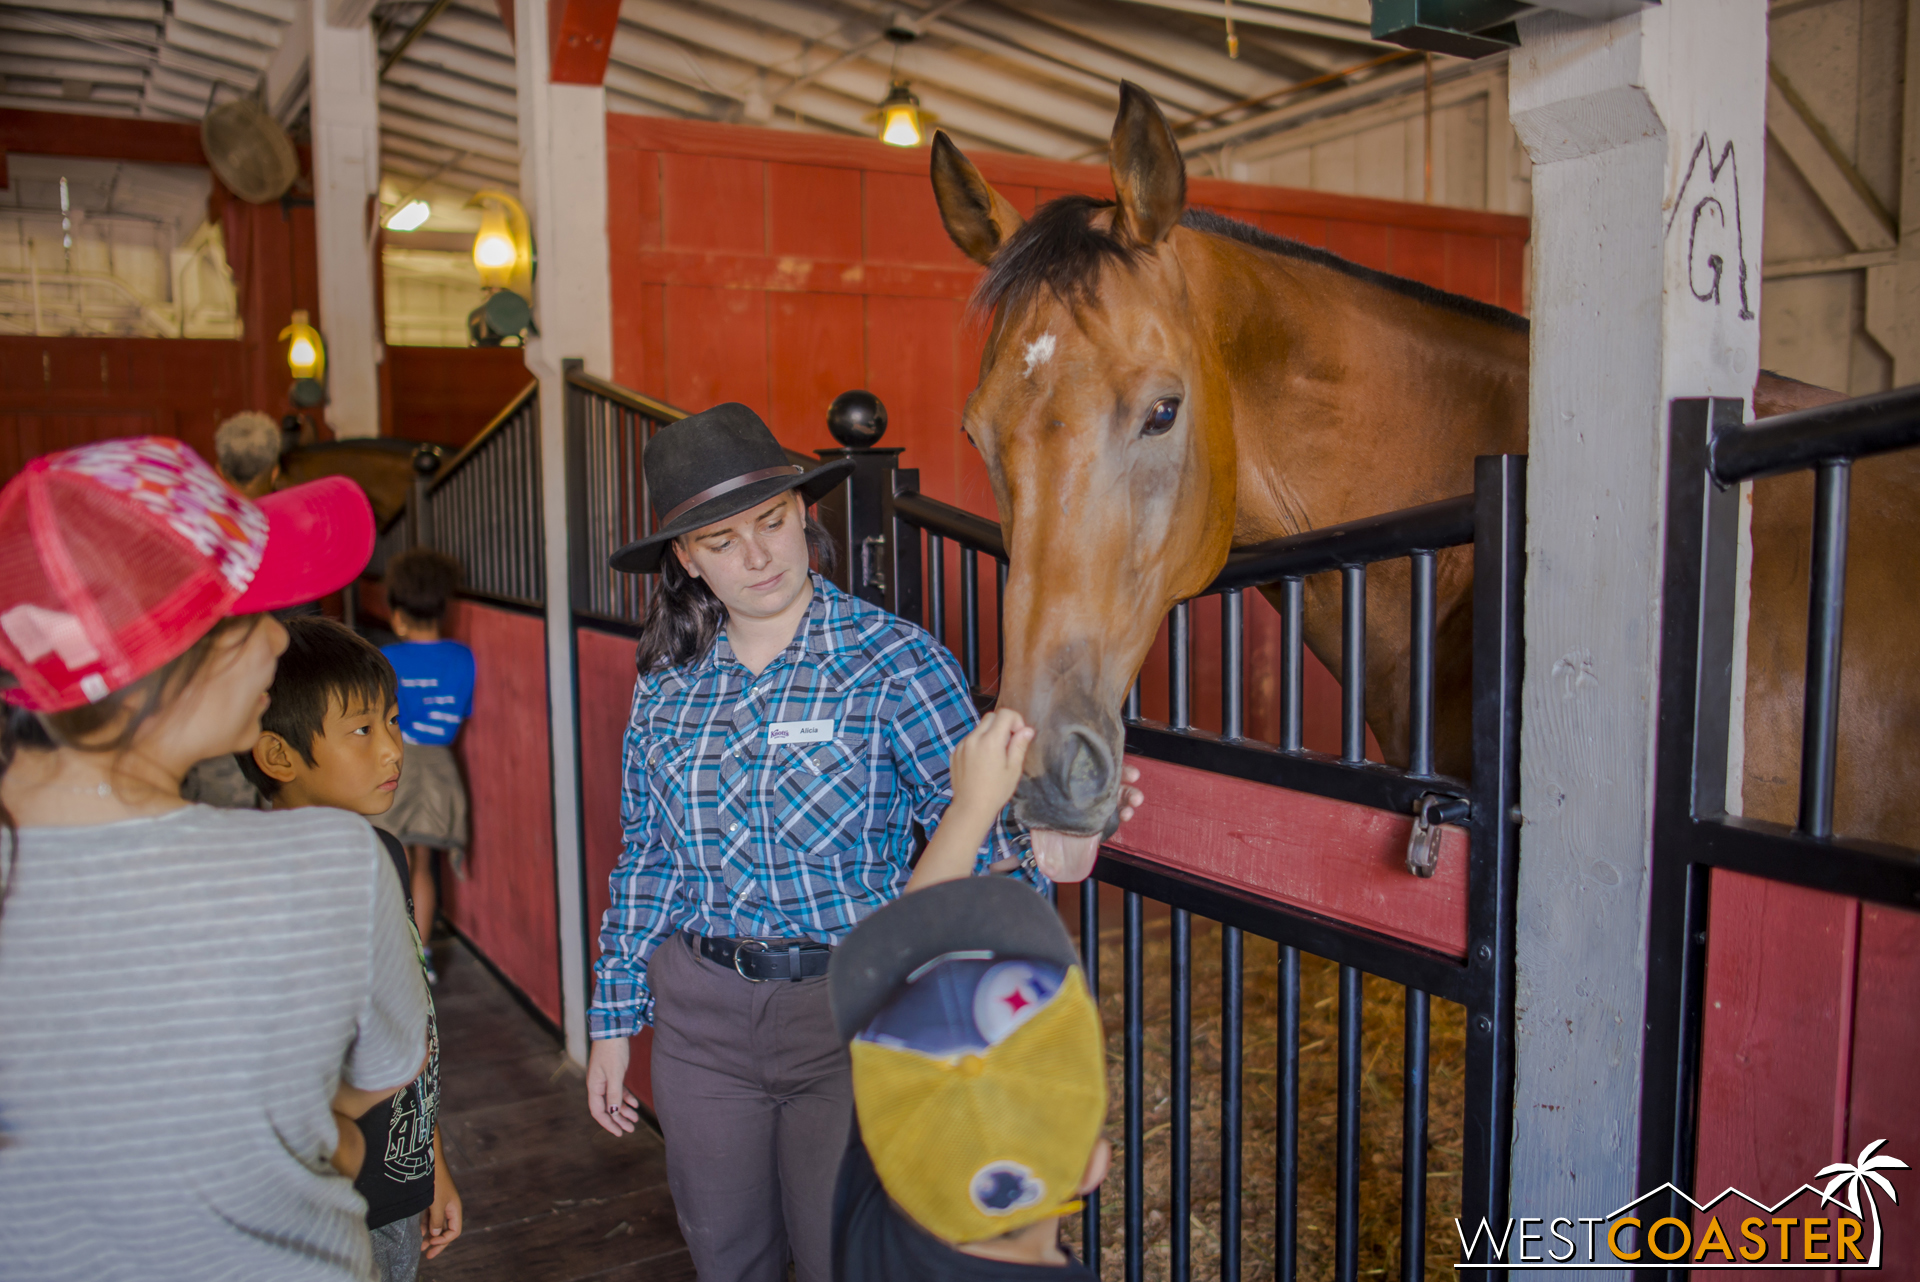 Guests could also pet some beautiful horses.